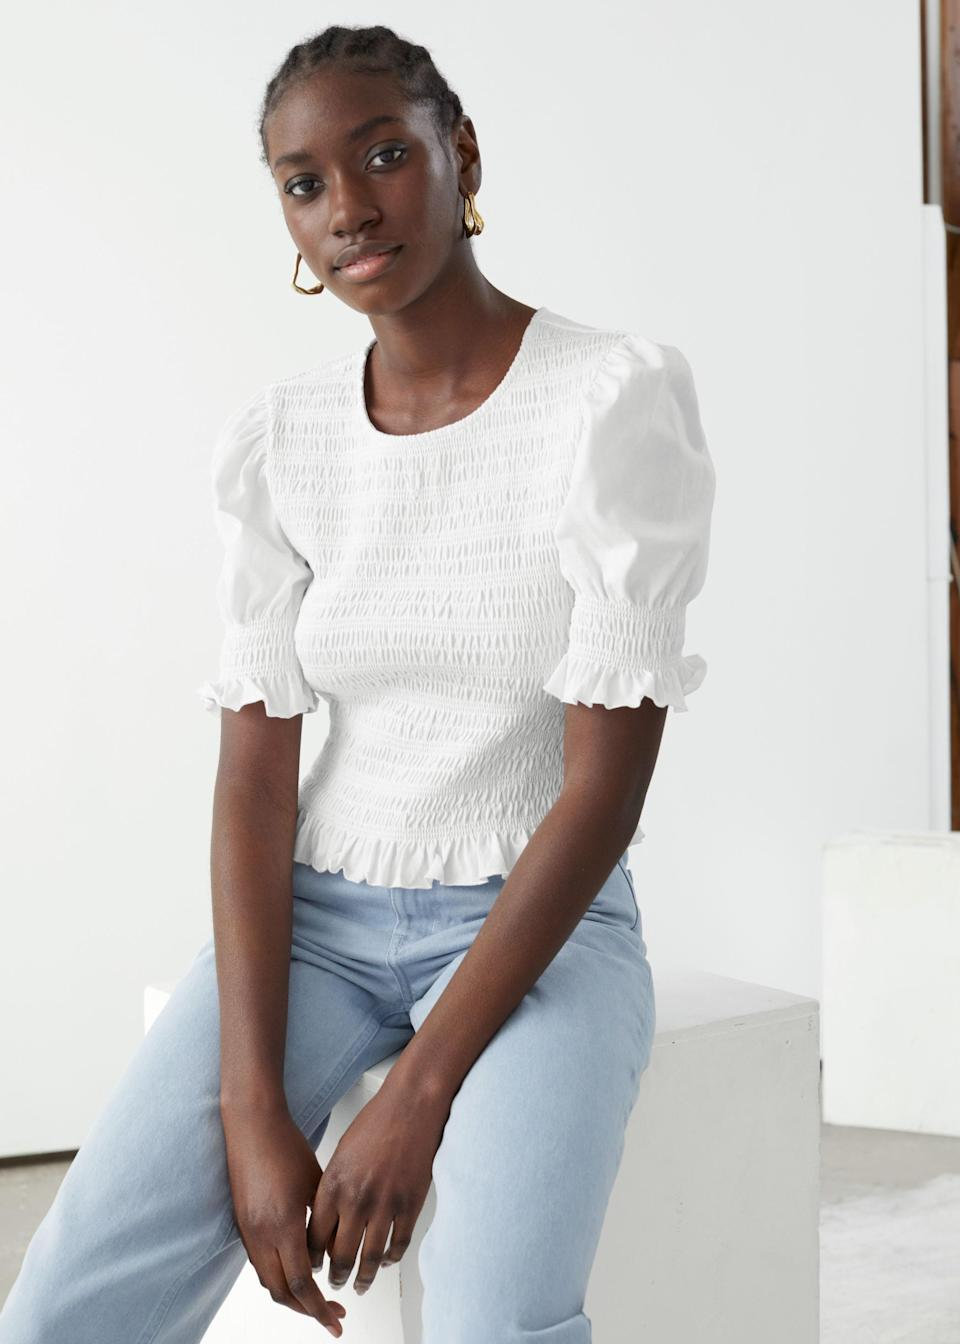 """$49, & Other Stories. <a href=""""https://www.stories.com/en_usd/clothing/tops/tops-t-shirts/product.smocked-puff-sleeve-crop-top-white.0864694004.html"""" rel=""""nofollow noopener"""" target=""""_blank"""" data-ylk=""""slk:Get it now!"""" class=""""link rapid-noclick-resp"""">Get it now!</a>"""